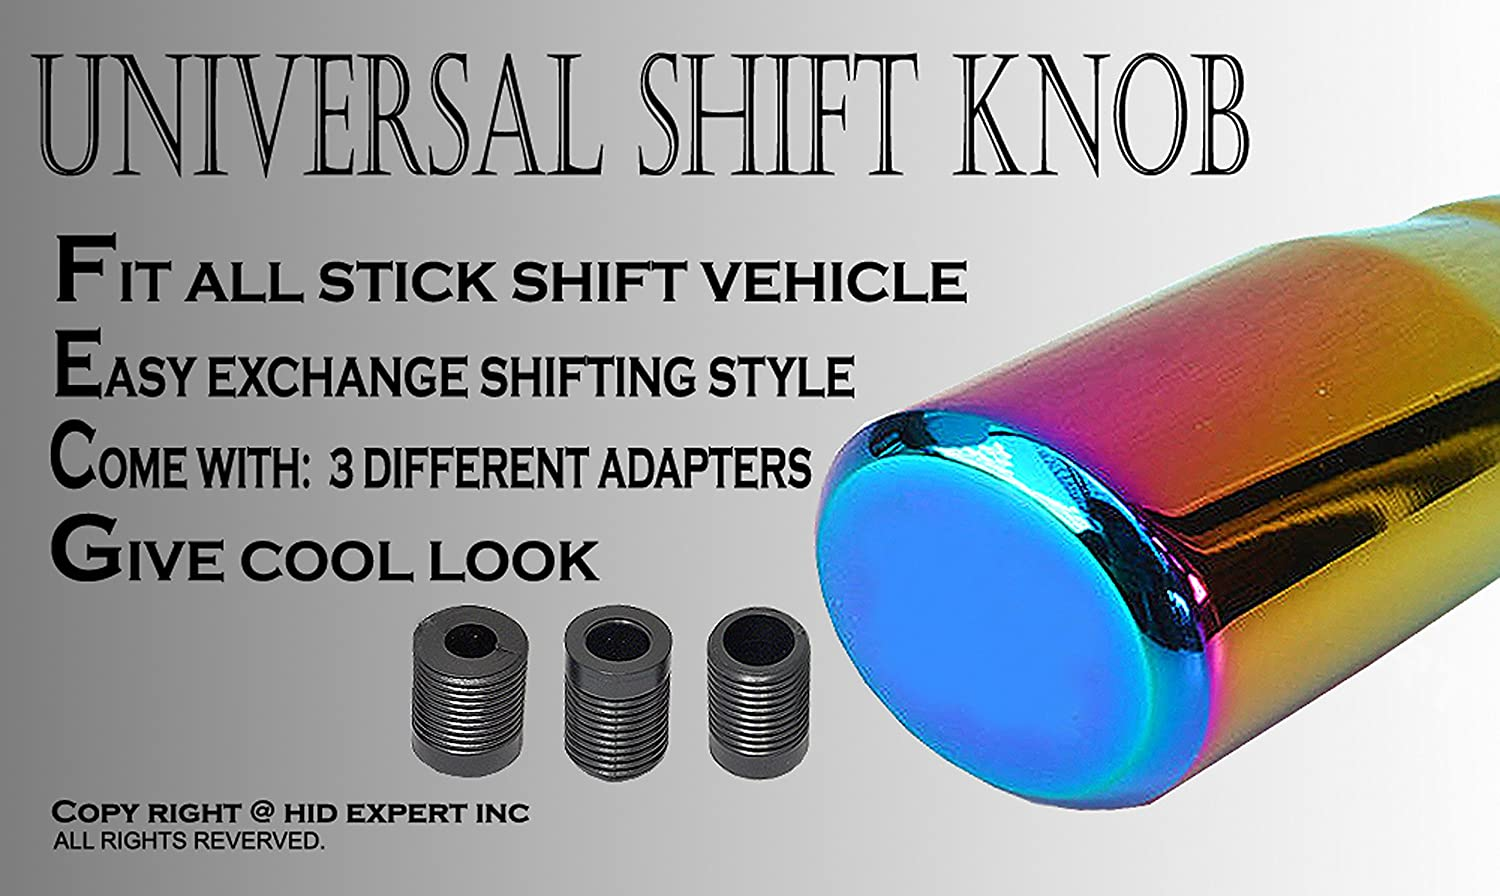 Pack of 1 ICBEAMER Racing JDM Style Manual Stick Shift Transmission Only Neo Chrome Auto Drifting Shape Bar Shift Knob